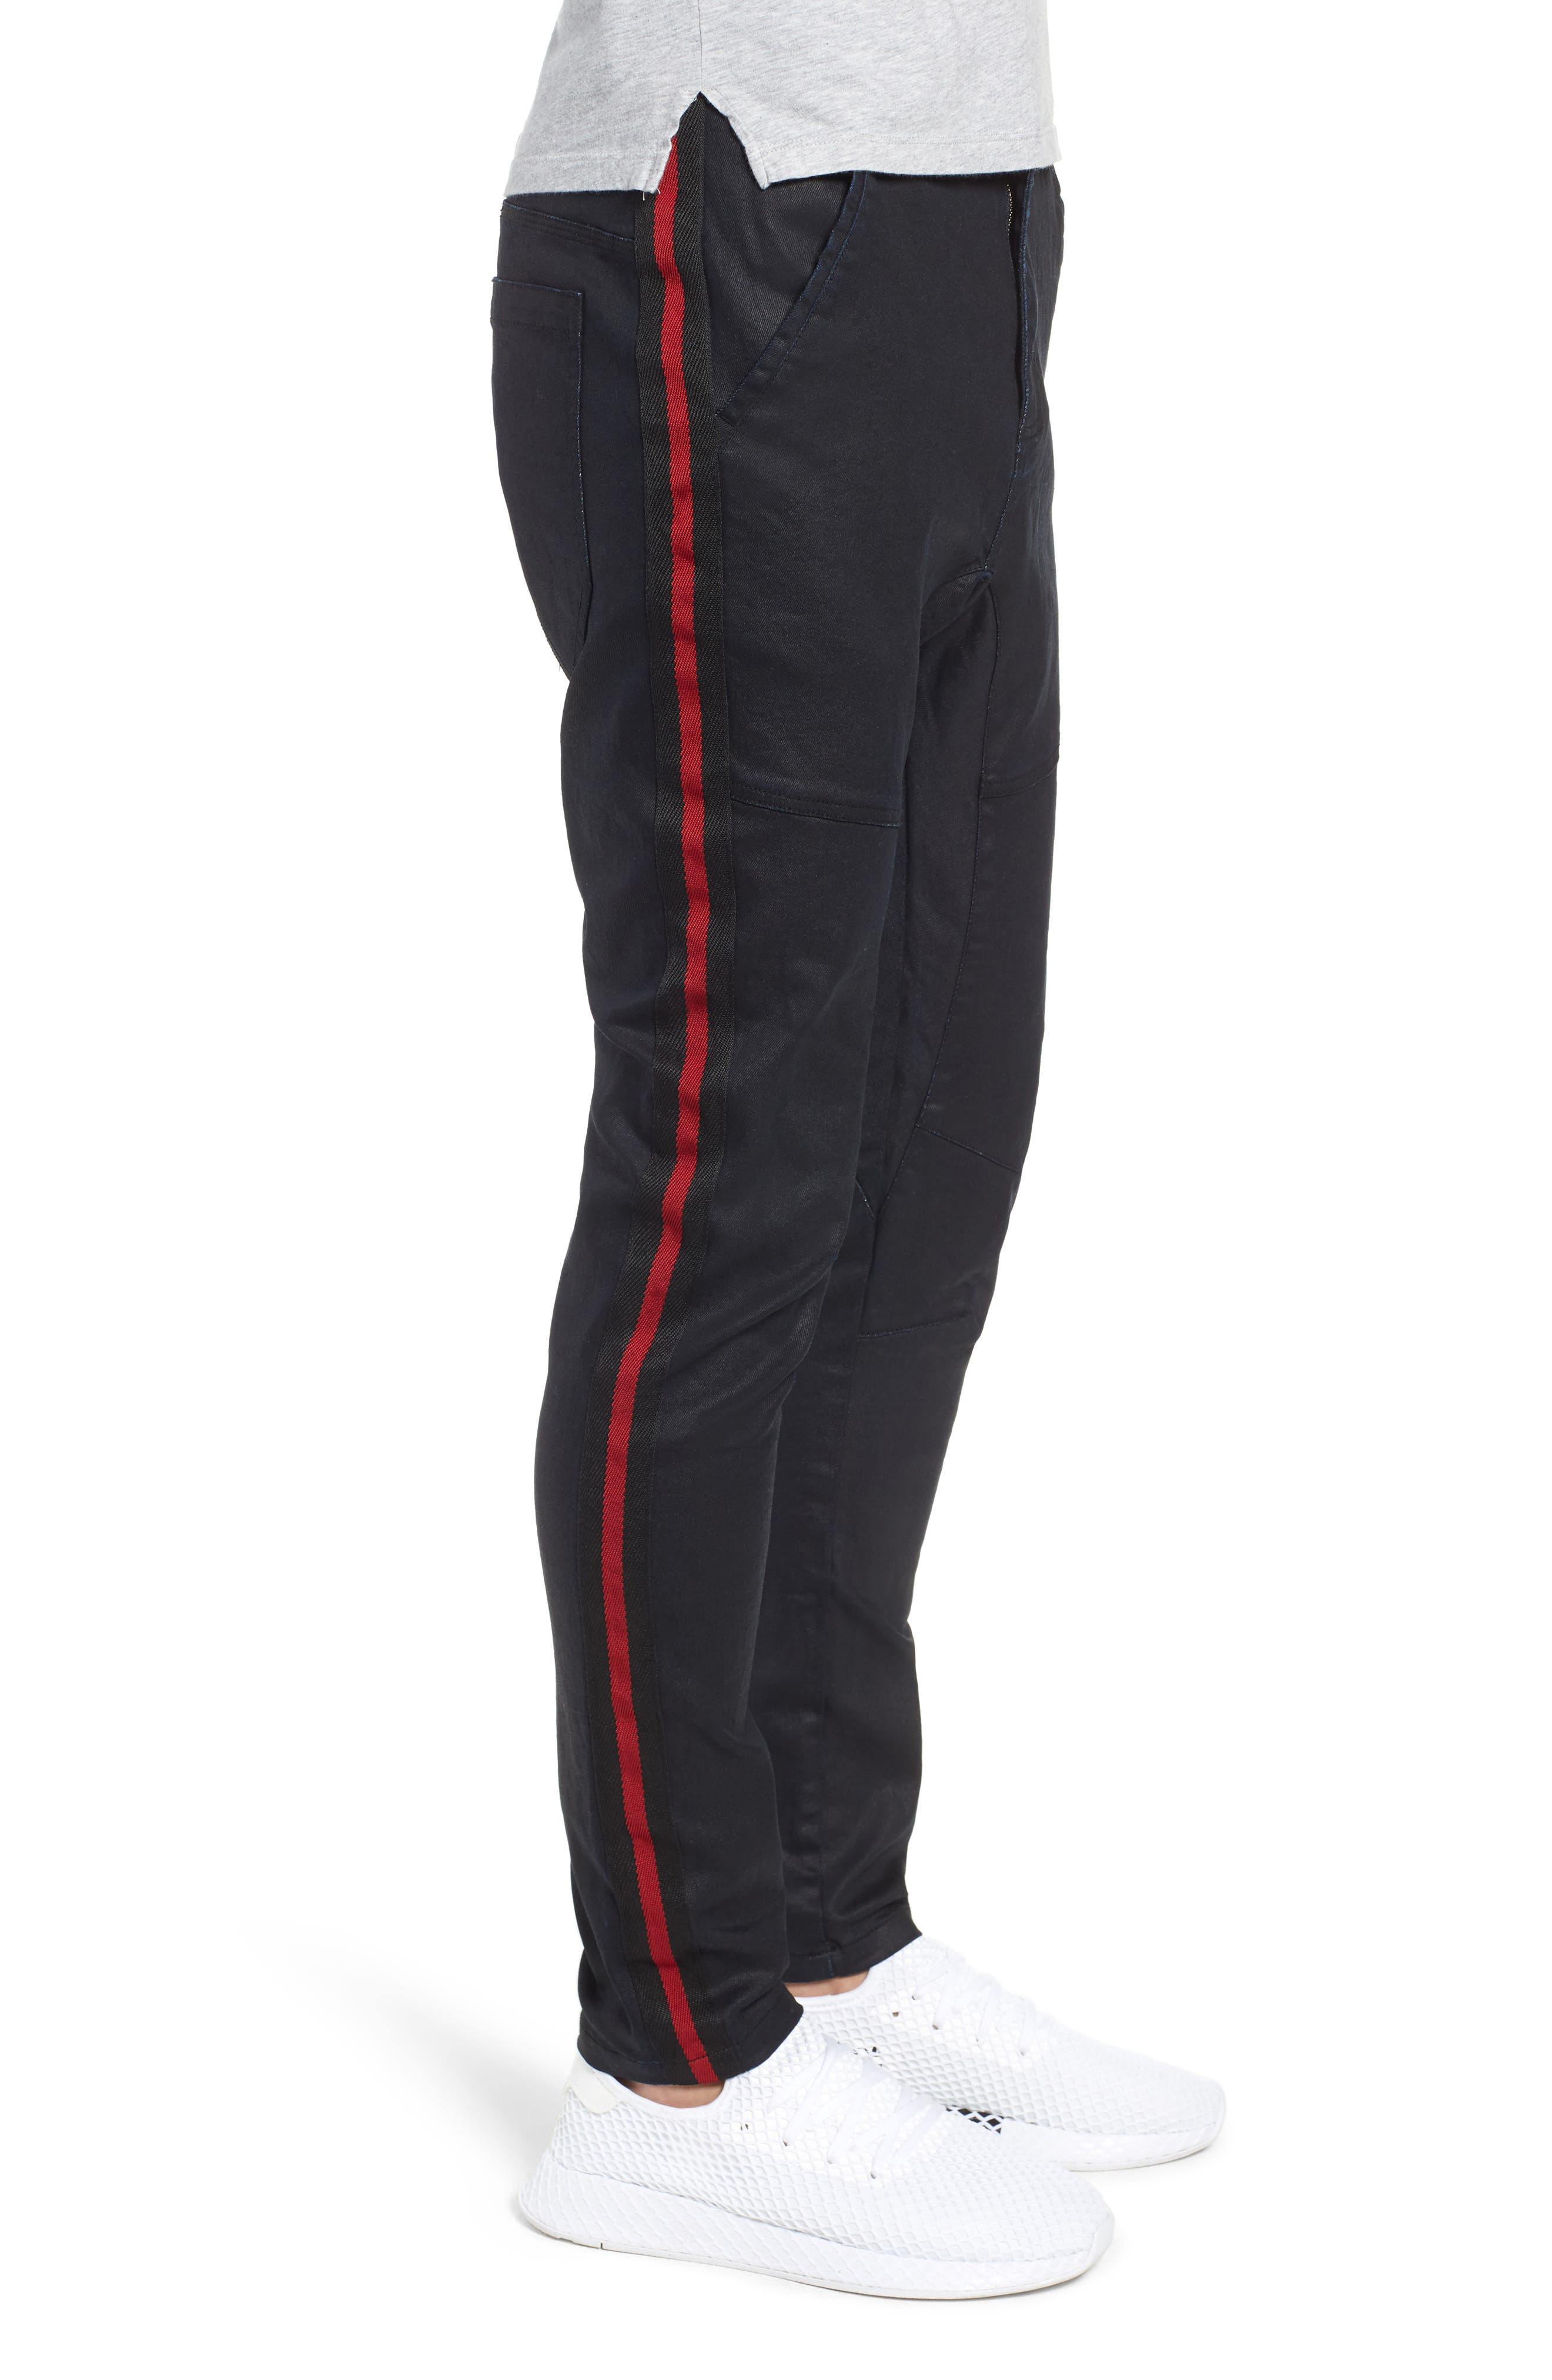 Baseline Taped Skinny Fit Jeans,                             Alternate thumbnail 3, color,                             WAX BLACK RED STRIPE